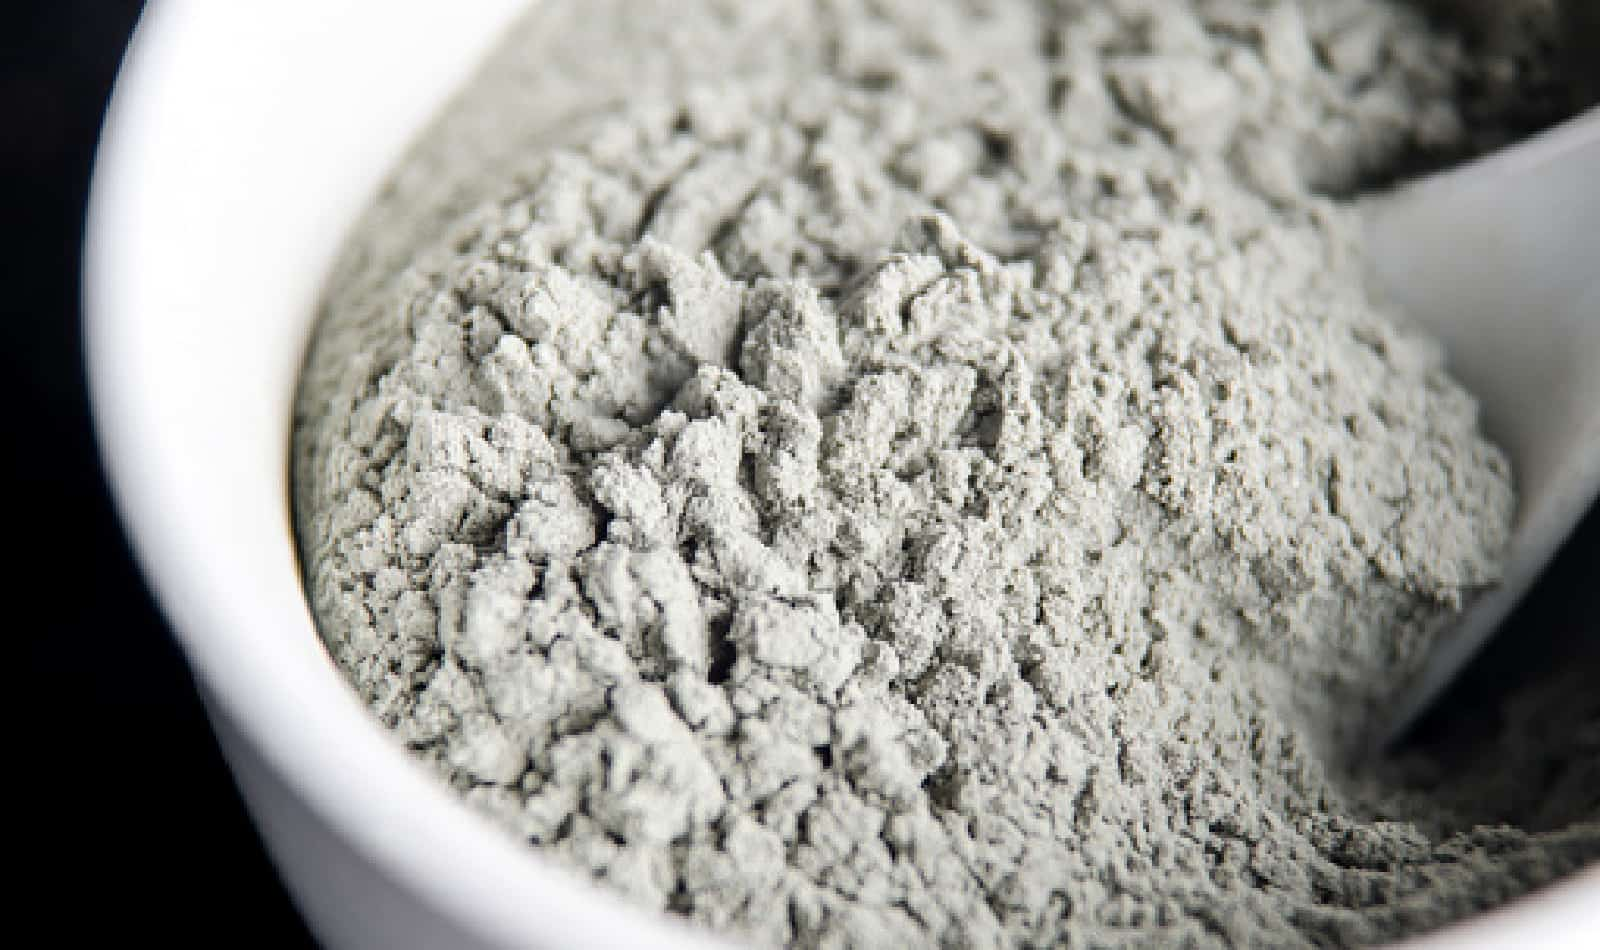 Let's talk about Kaolin clay for hair! We're looking at the best products to buy as well as cheap masks to DIY for stronger and healthier locks. Check it out!